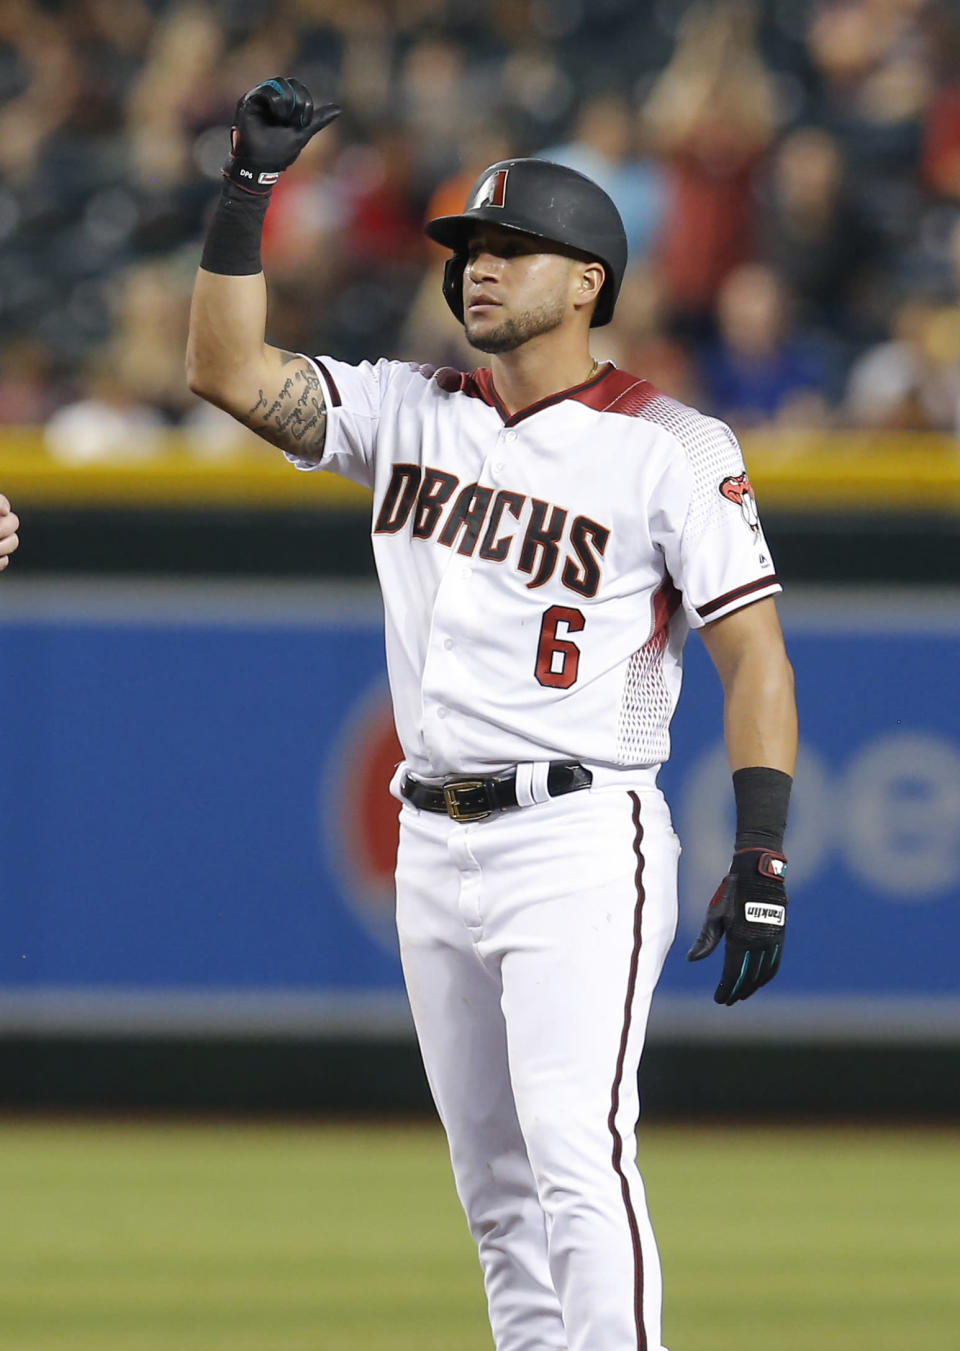 Arizona Diamondbacks' David Peralta reacts after hitting an RBI double against the Los Angeles Dodgers in the fourth inning during a baseball game, Wednesday, June 5, 2019, in Phoenix. (AP Photo/Rick Scuteri)